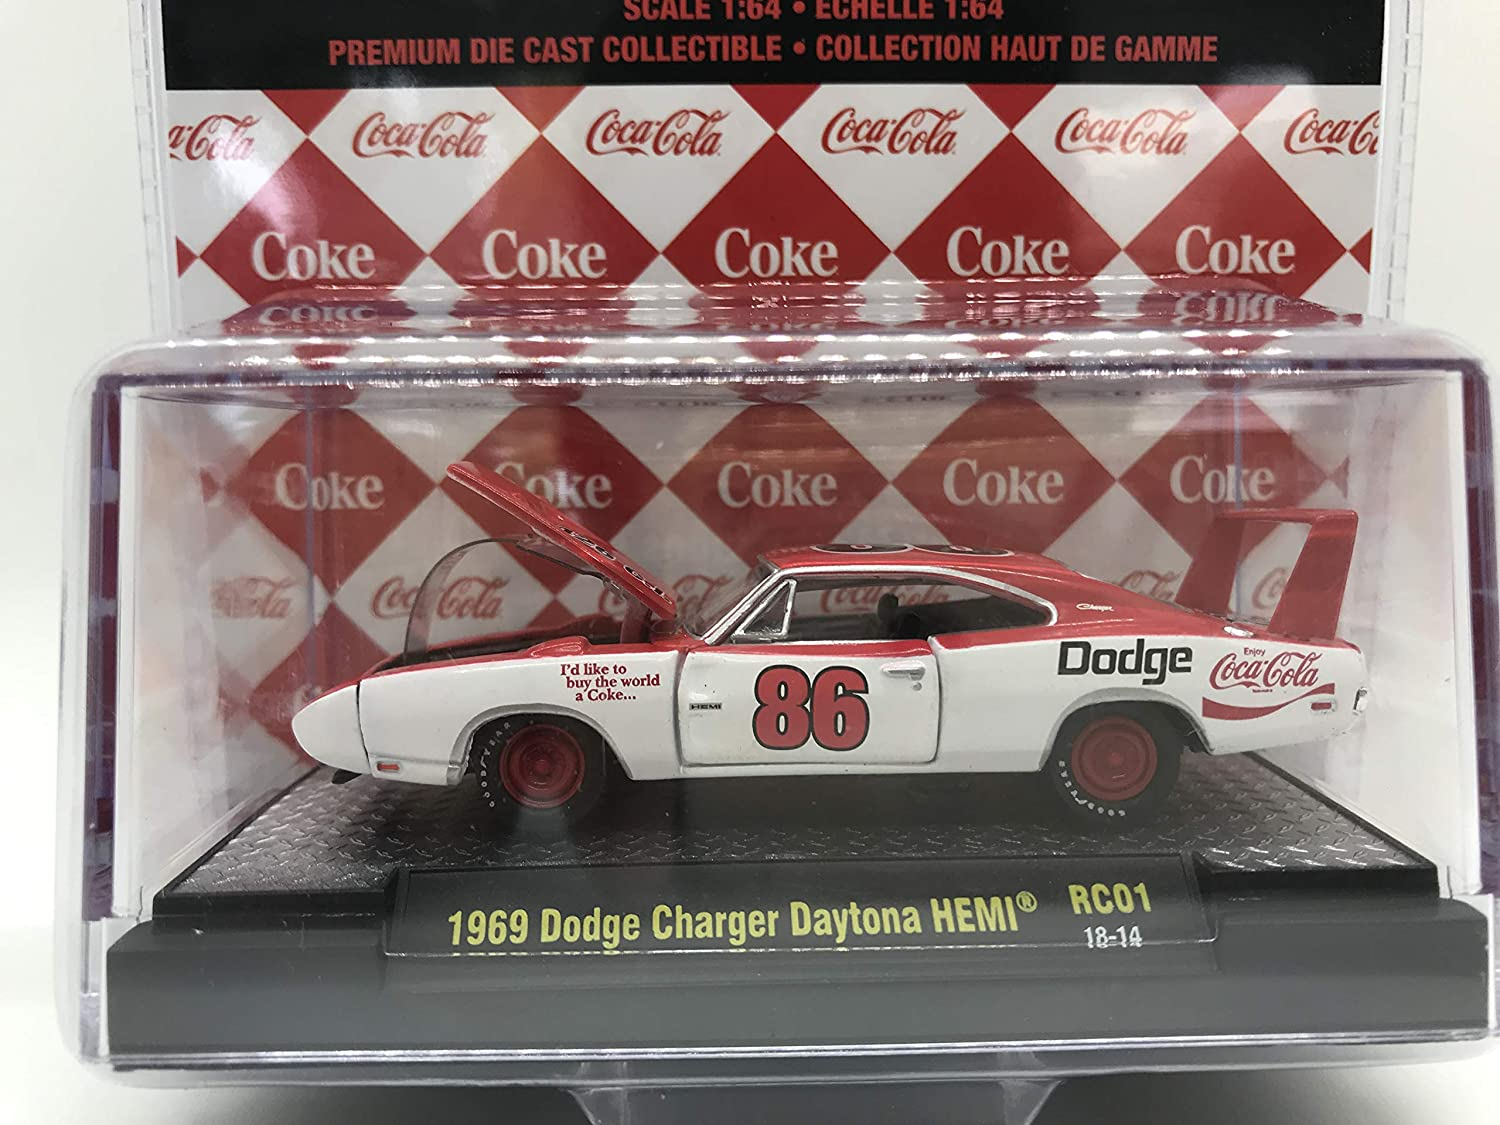 M2 Machines Coca-Cola Limited Edition 1969 Dodge Charger Daytona HEMI 1:64 Scale RC01 18-14 White//Red Details Like NO Other Over 42 Parts 1 of 4800